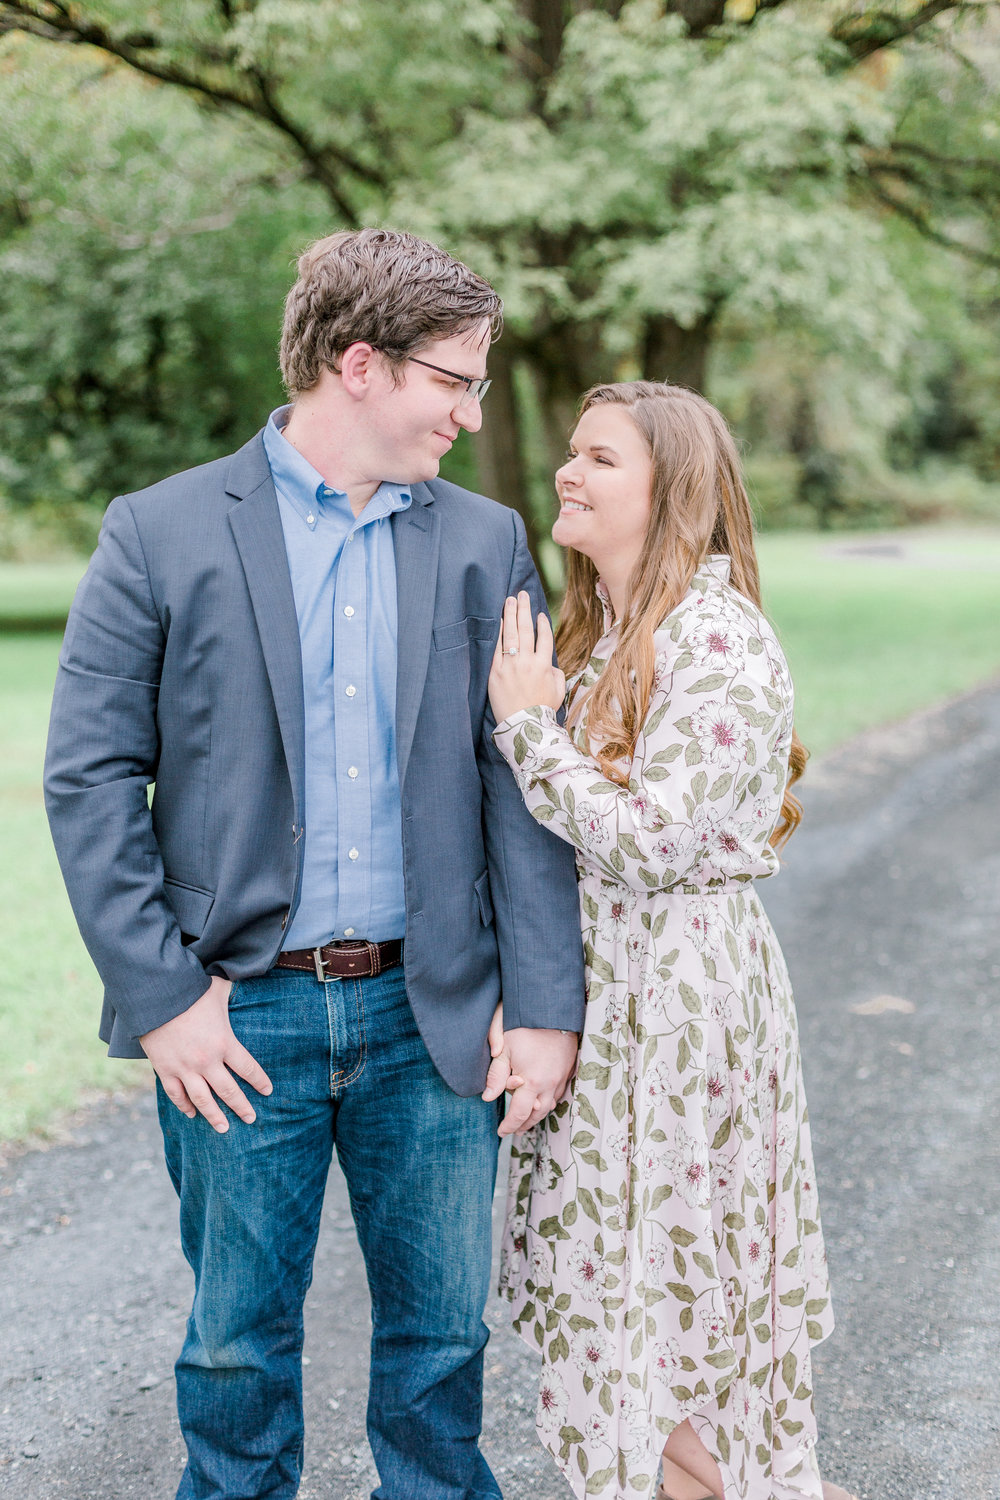 Lehigh valley Fish hatchery fall Engagement Session wedding and lifestyle photographer Lytle Photo Co (10 of 66).jpg